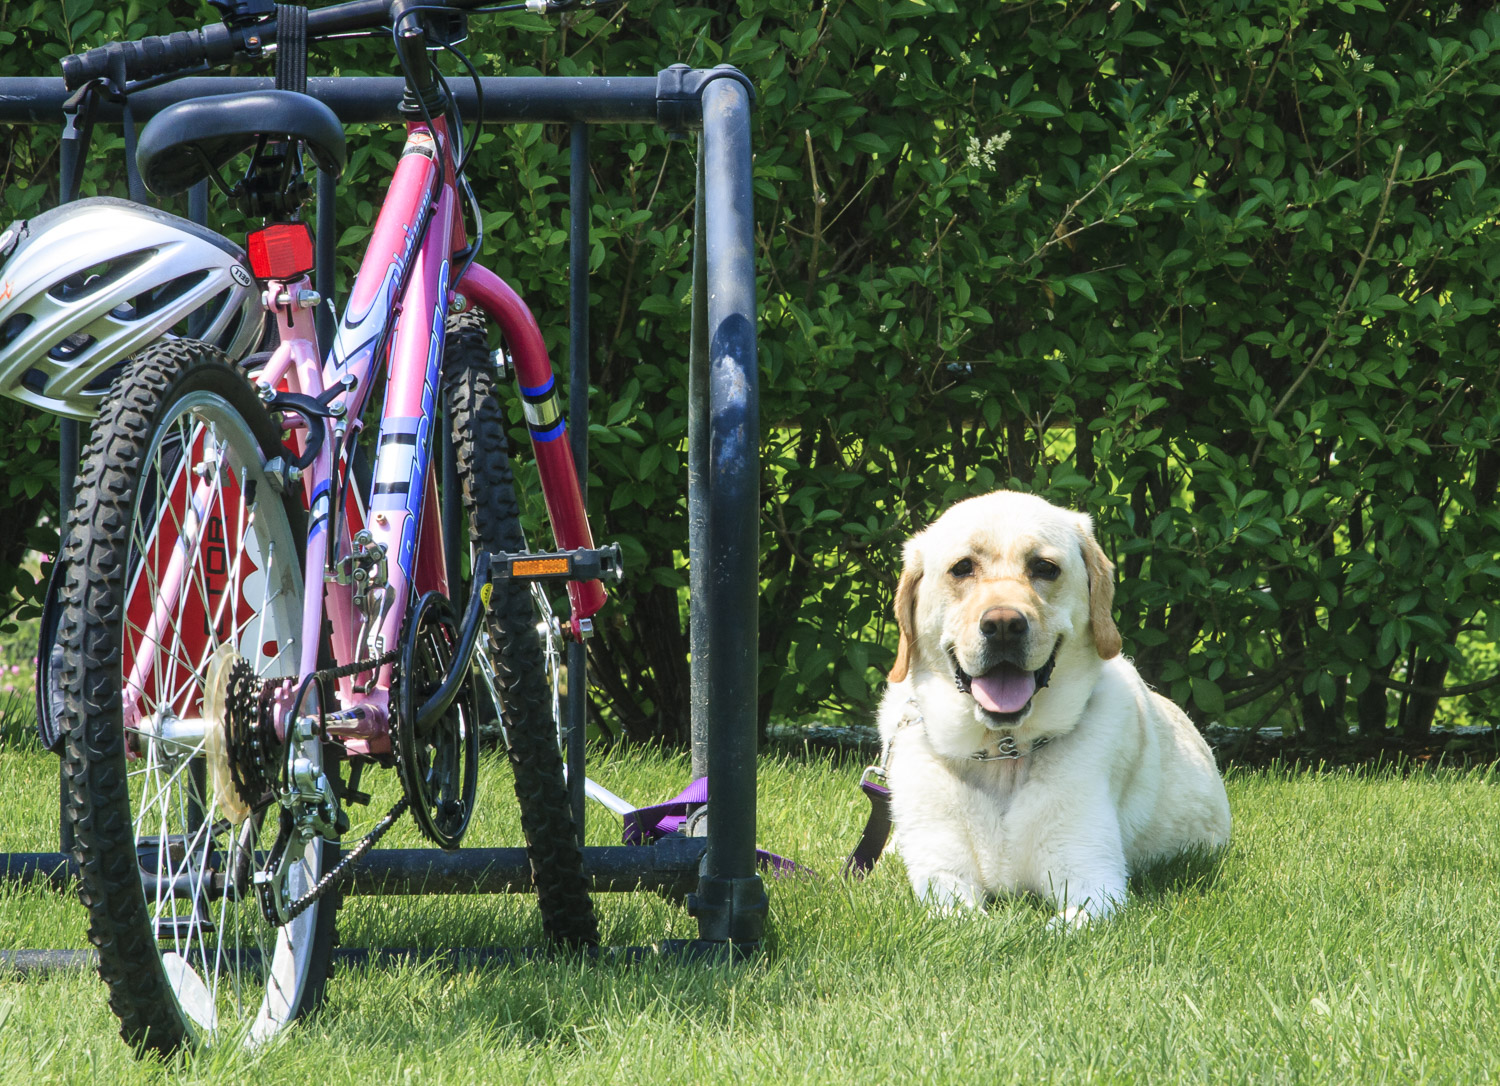 Bike Rack, Bike and Doggie, Outdoors